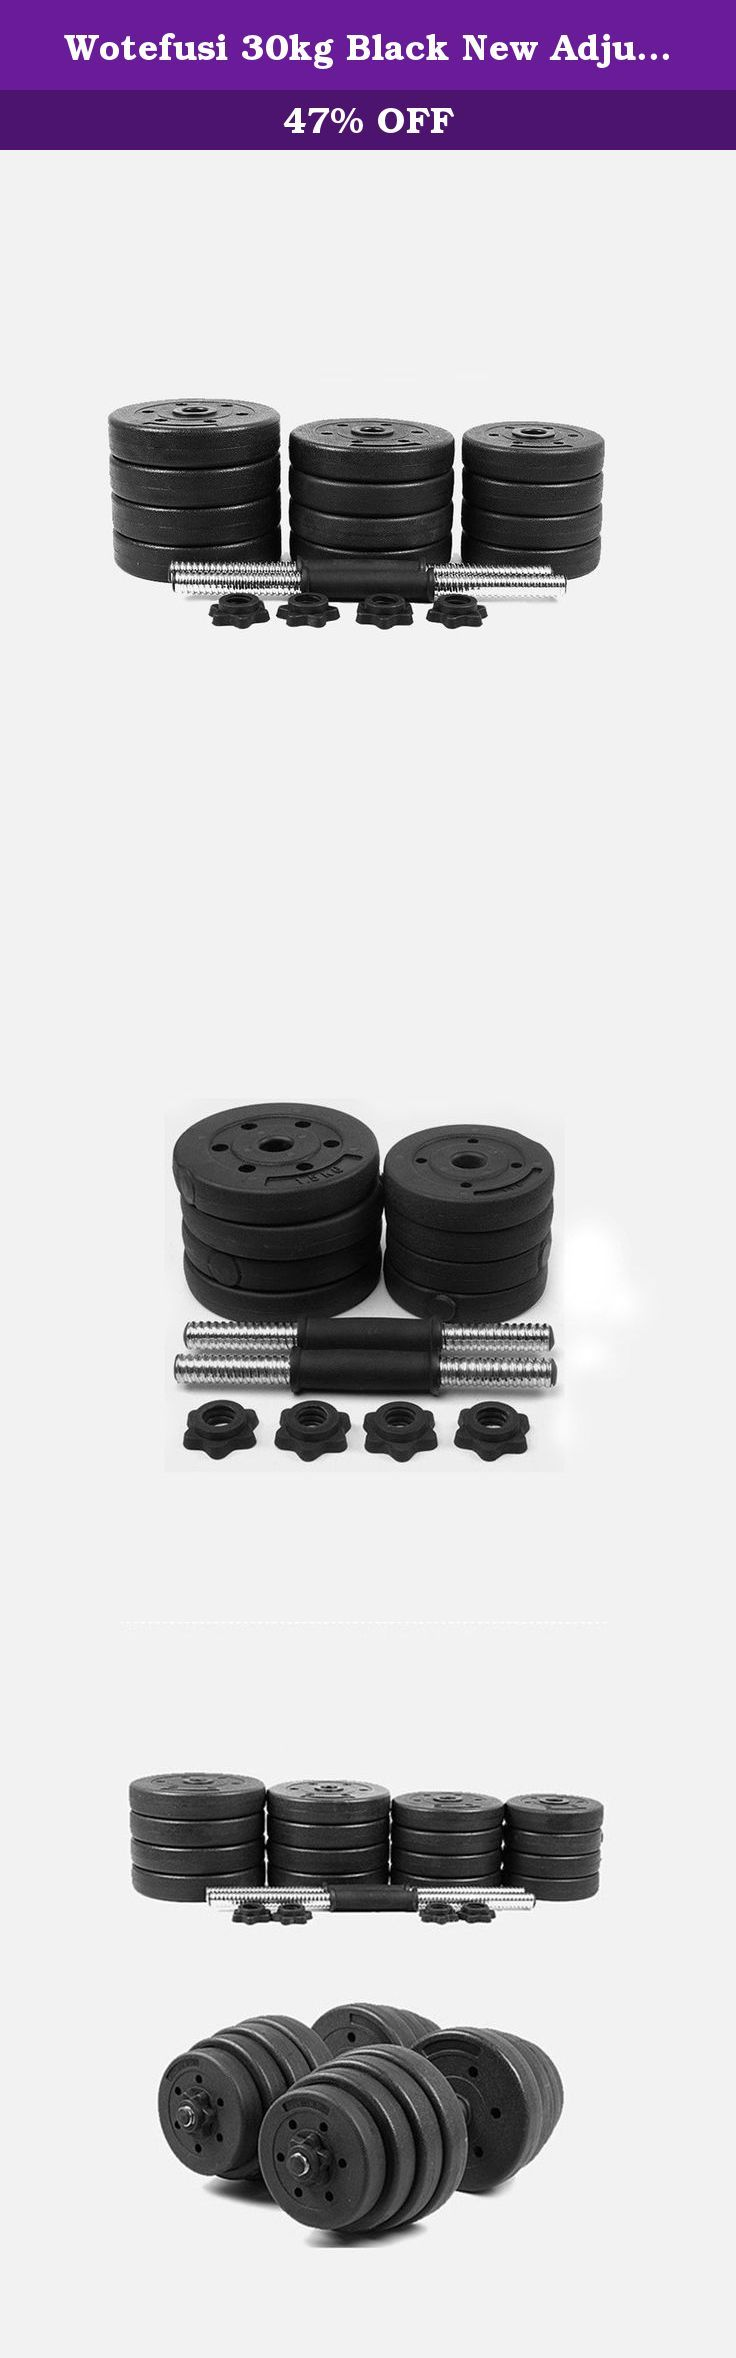 Wotefusi 30kg Black New Adjustable Dumbbells Set Weights Fitness Gym Exercise. Material: PE Package details: 10kg set: 8x Standard Plates,4x Spin Lock(star collors),2x dumbbell handles 15kg set: 8x Standard Plates,4x Spin Lock(star collors),2x dumbbell handles 20kg set: 12x Standard Plates,4x Spin Lock(star collors),2x dumbbell handles 30kg set: 16x Standard Plates,4x Spin Lock(star collors),2x dumbbell handles .